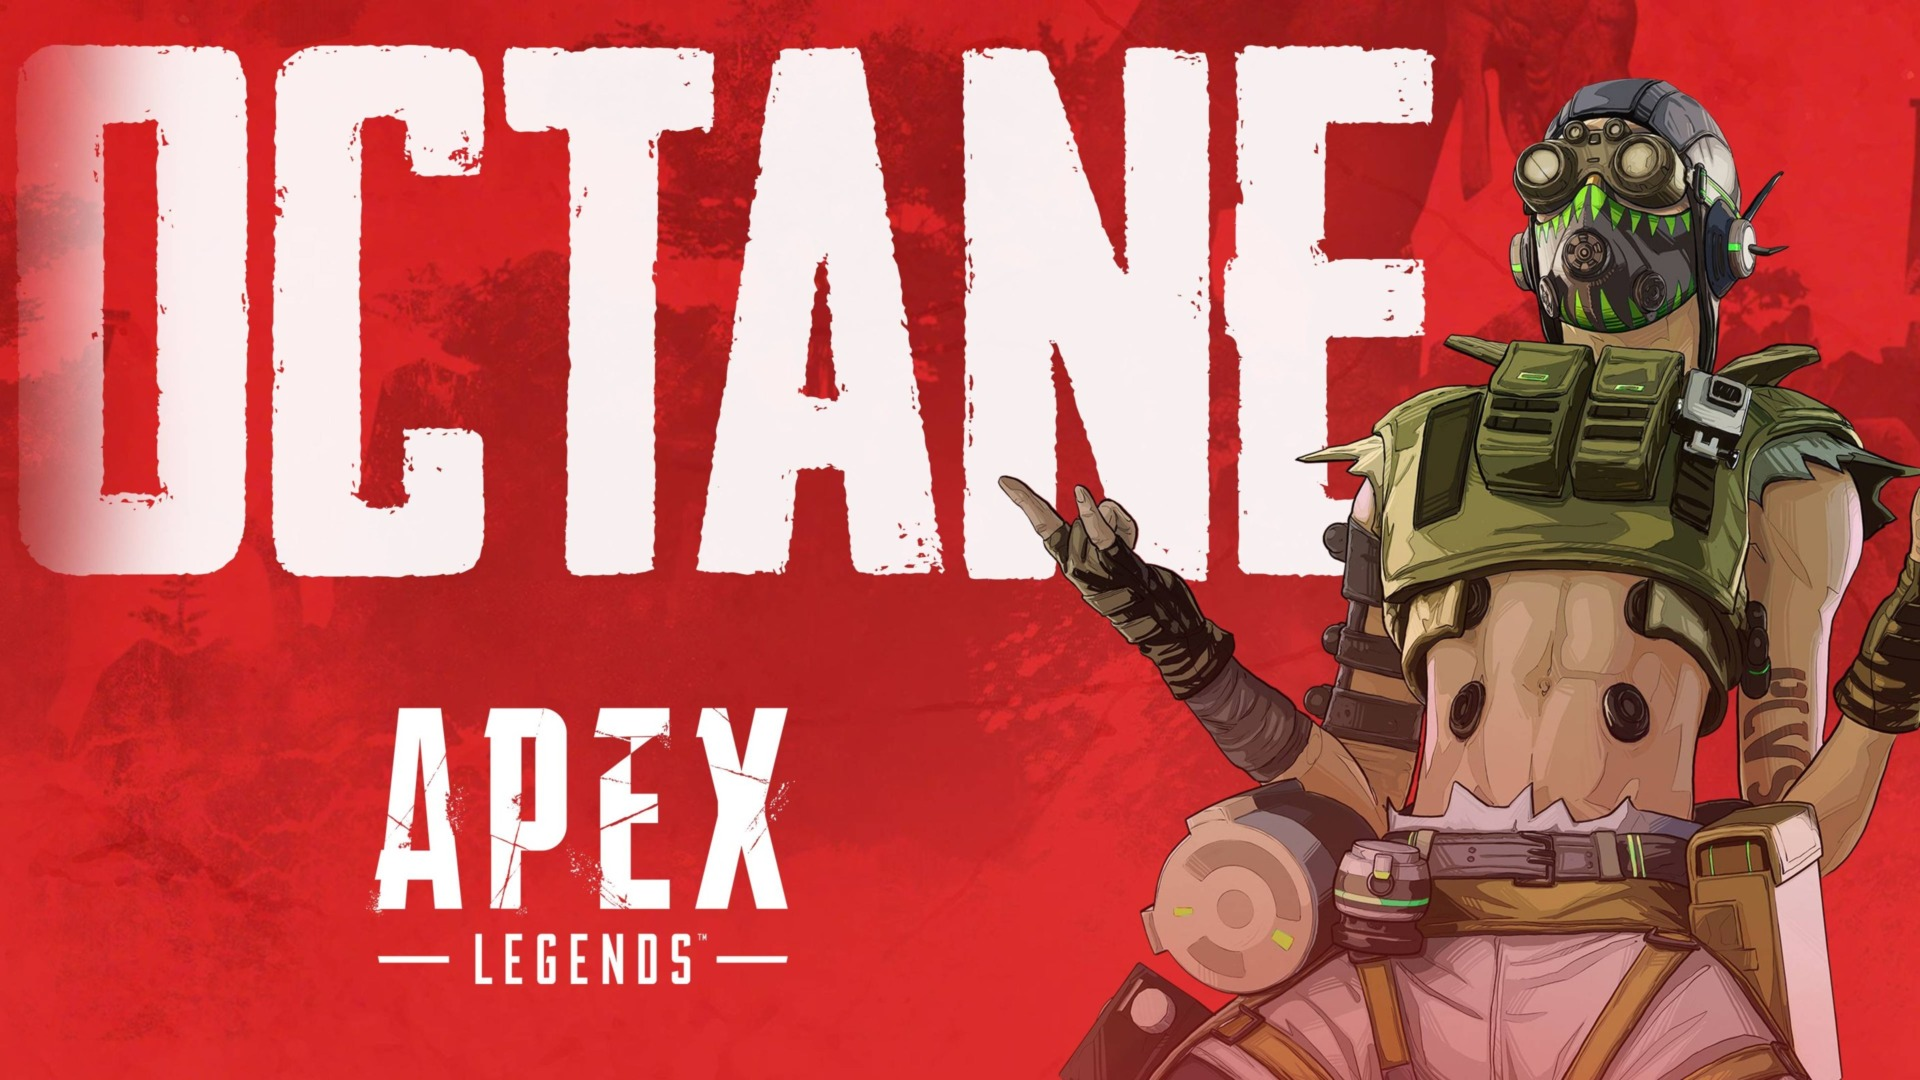 Octane Apex Backgrounds